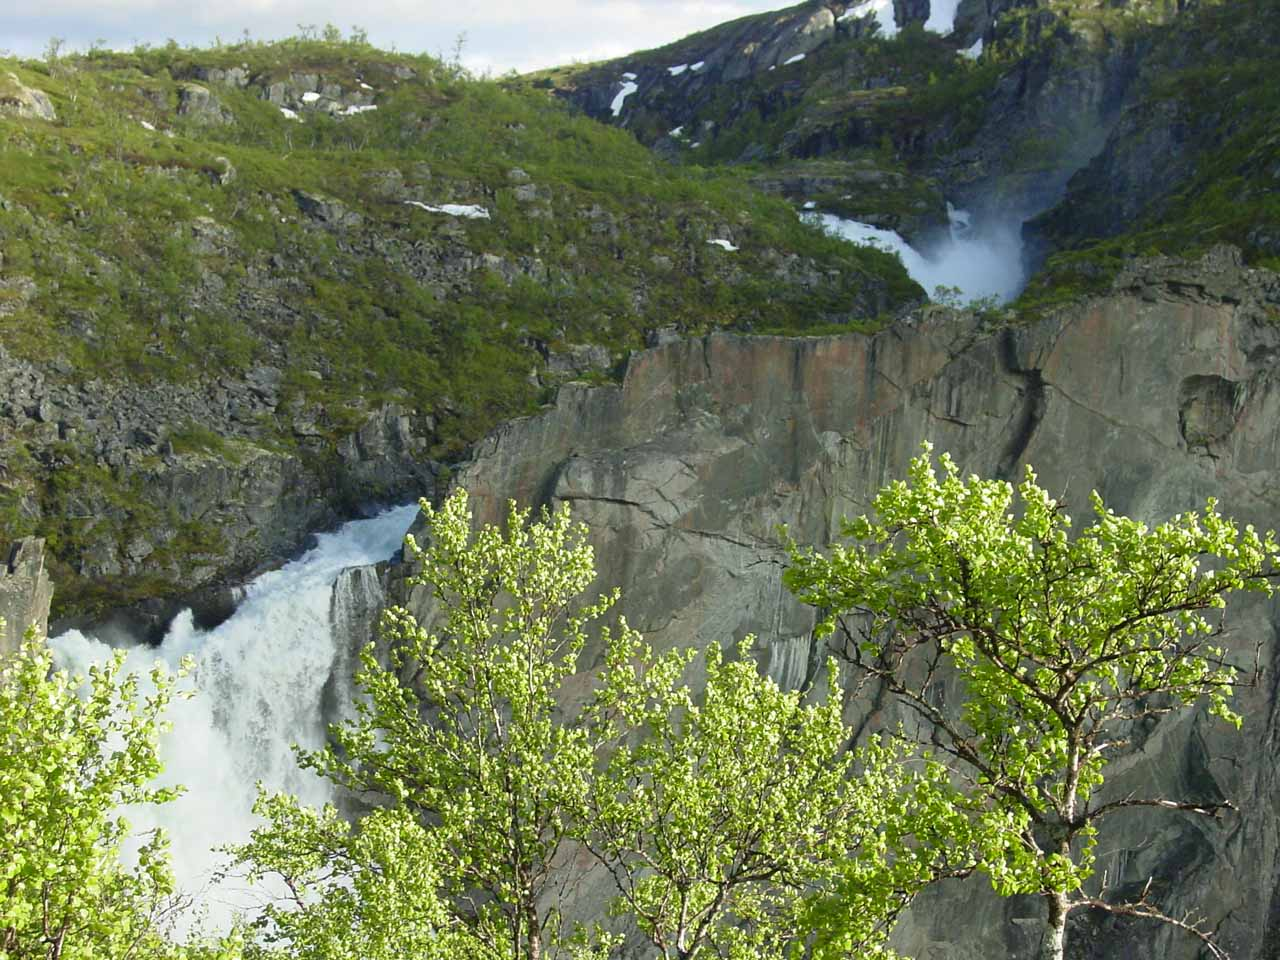 While we were basking in the glory of our accomplishment and the beauty of Valursfossen, we noticed another upper waterfall further upstream, which our maps identified as Røvskorfossen